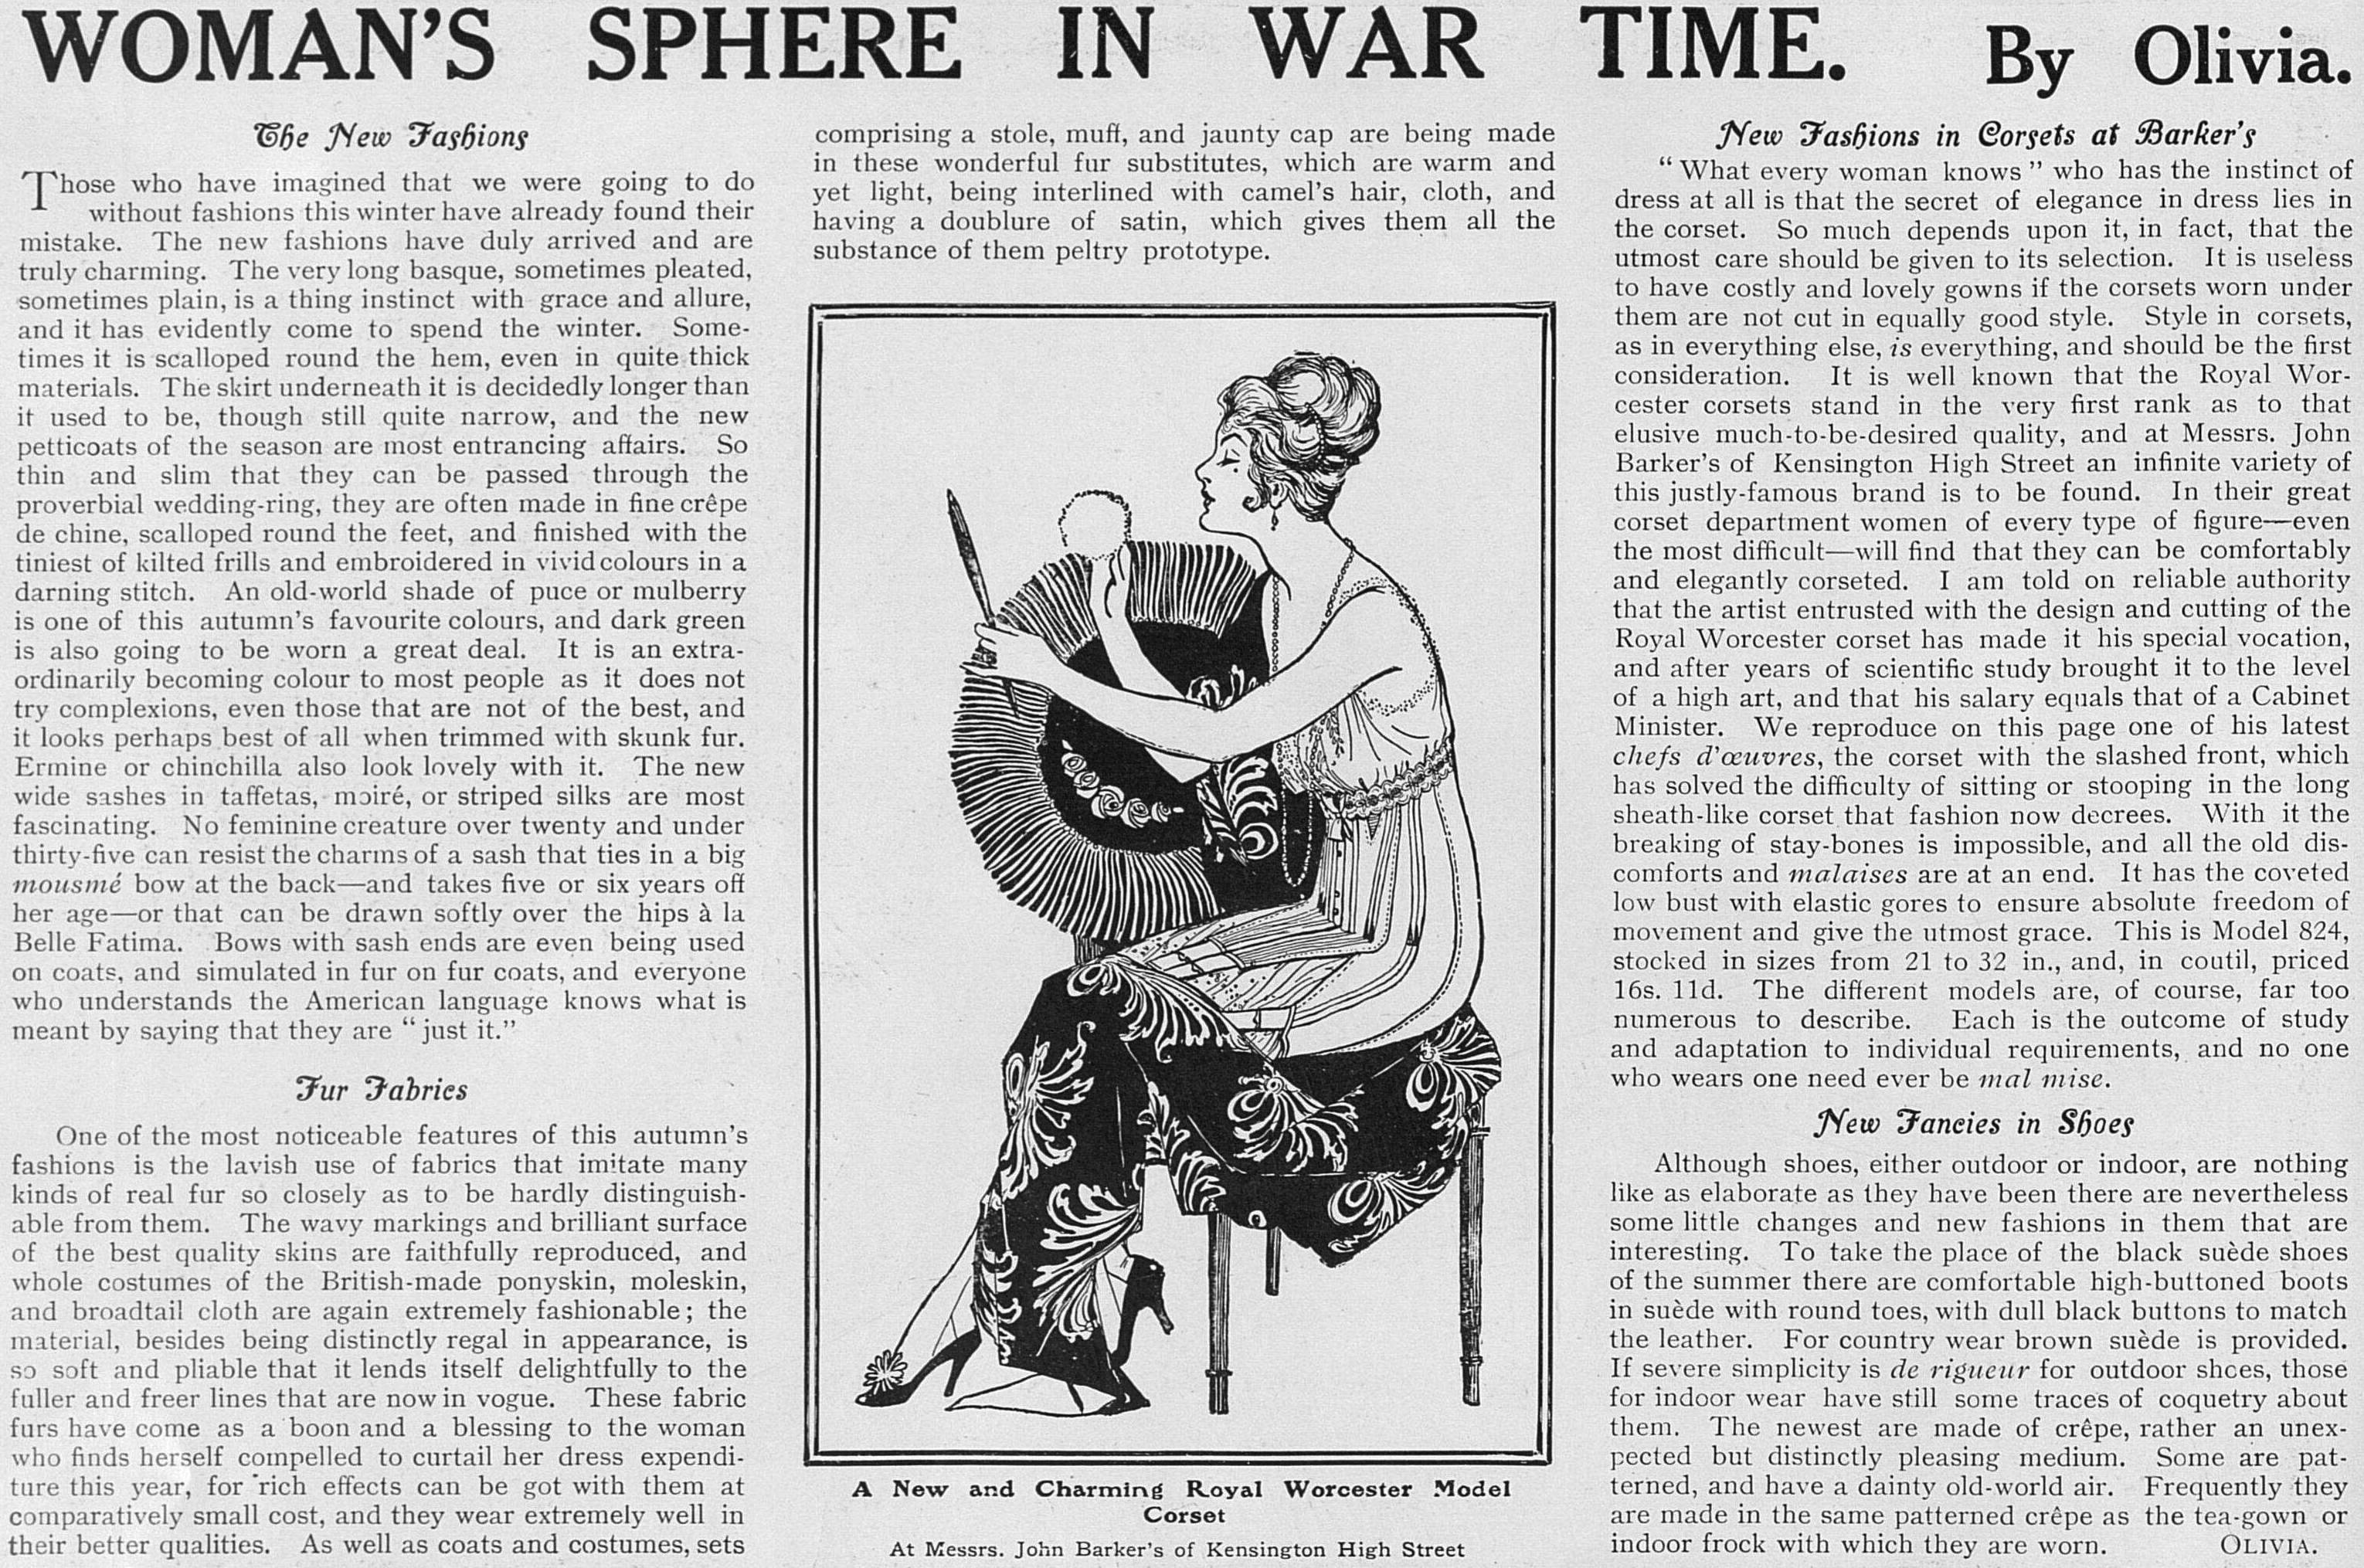 WomansSphereInWarTime_14Nov1914